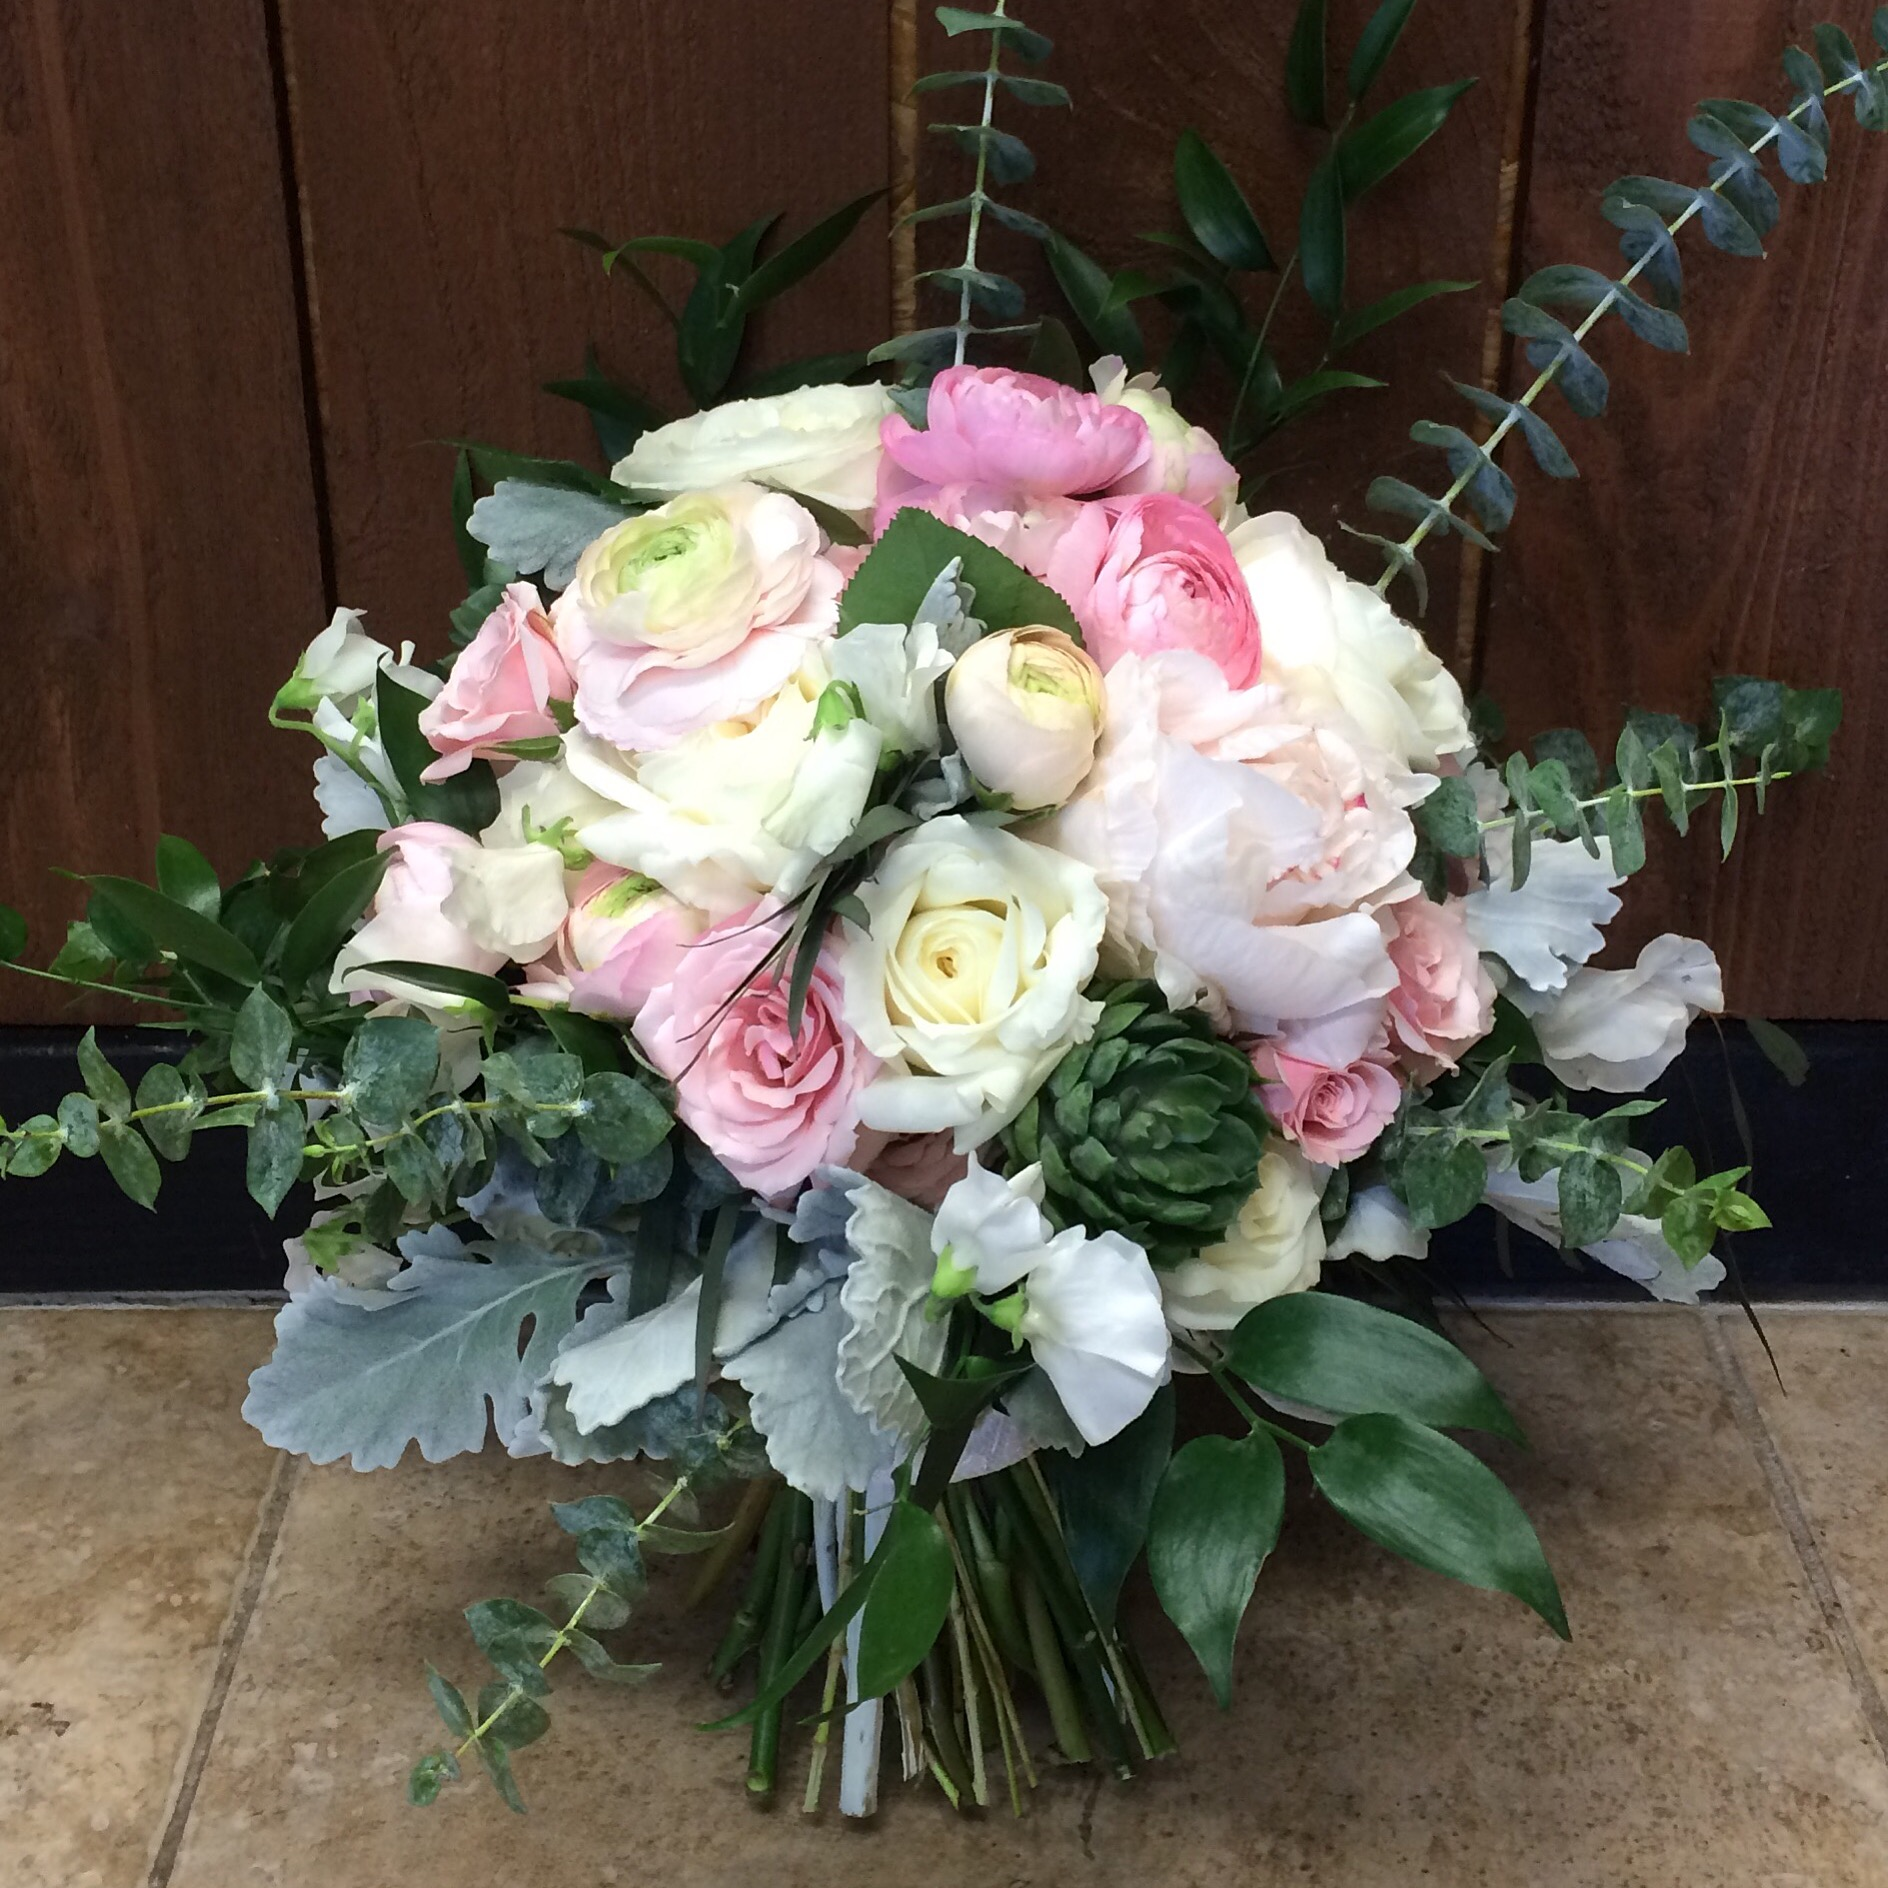 weddings u0026 events sunshine designs florist pensacola florida